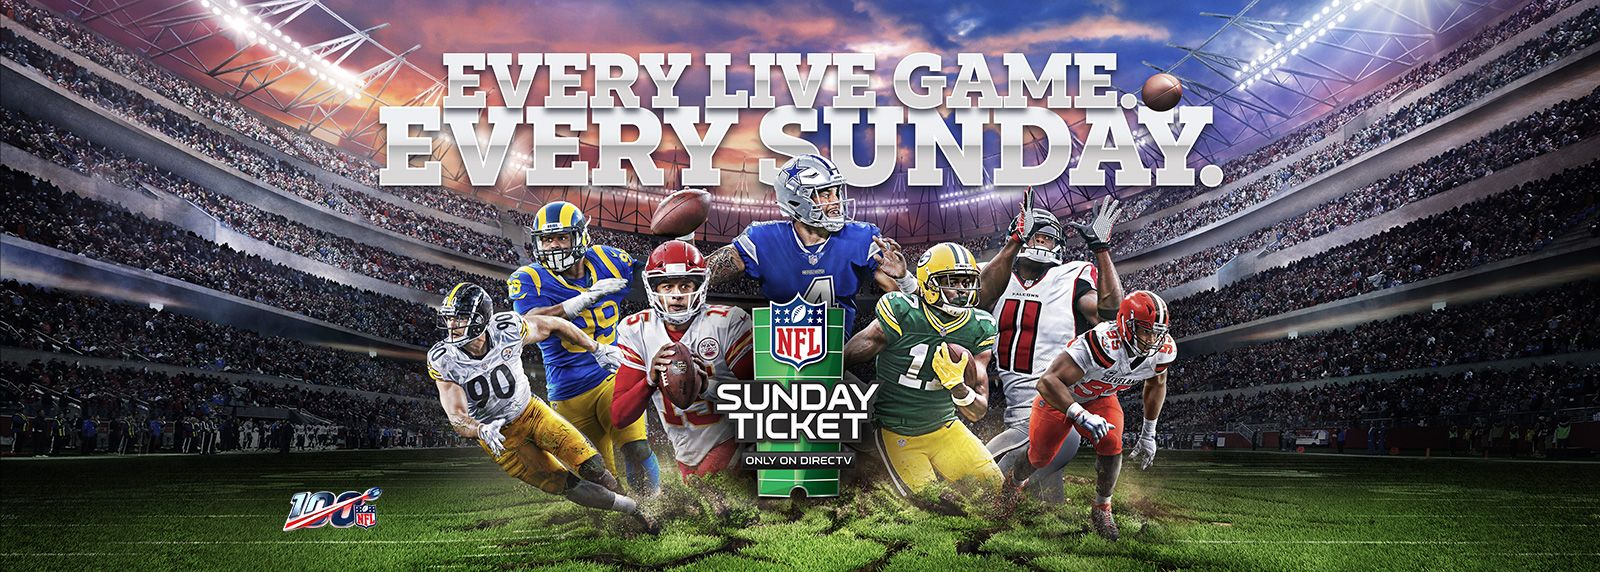 No Title Nfl Network Sports Channel Nfl Sunday Ticket